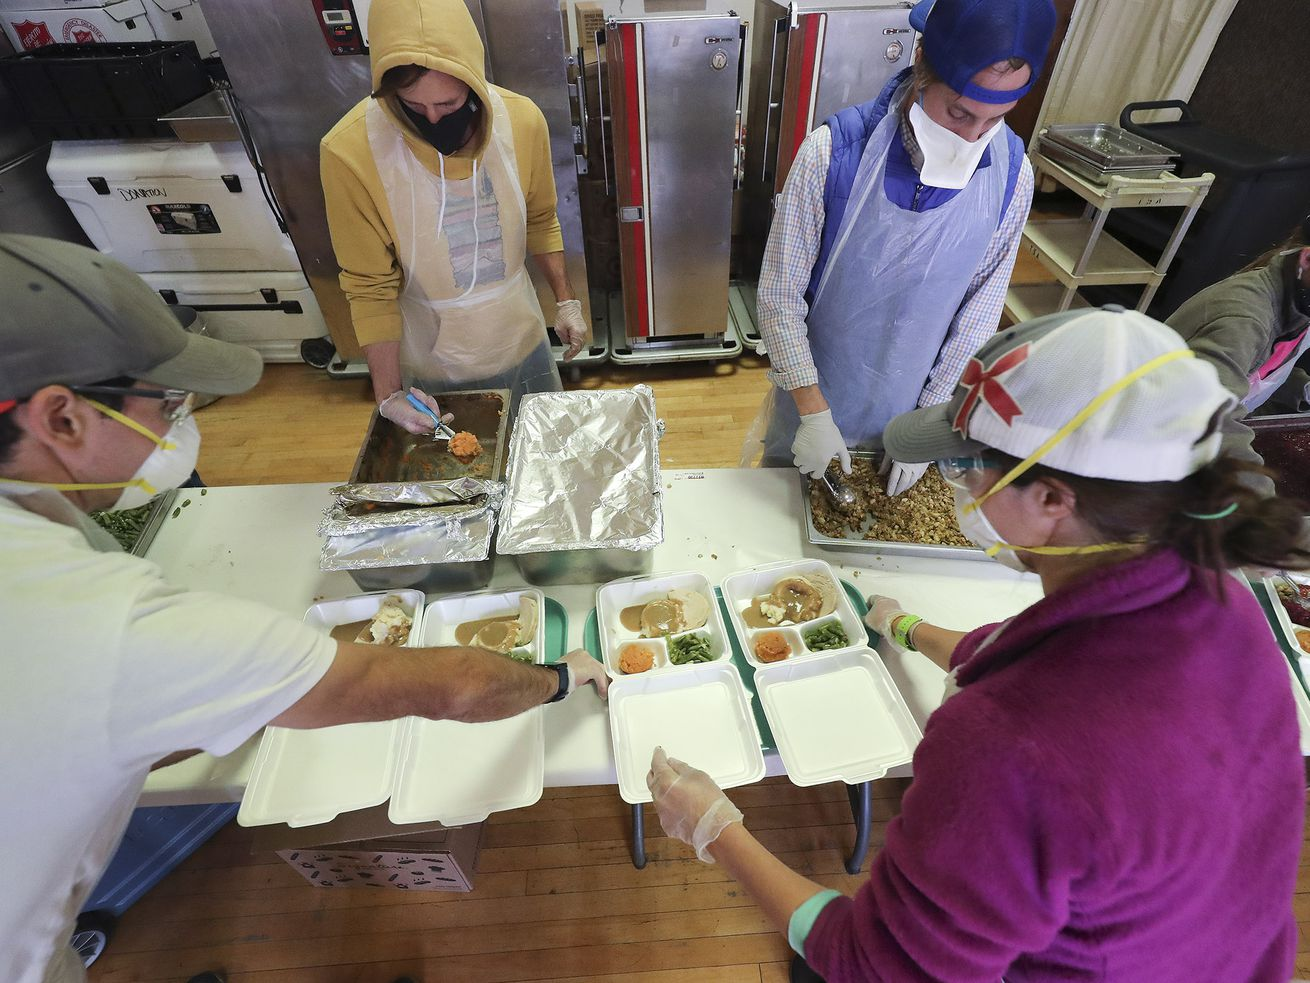 Volunteers Derek Storrs, Marcus Cline, Jamen Nelson and Katie Storrs assemble traditional Thanksgiving dinners at the Salvation Army in Salt Lake City on Thursday, Nov. 26, 2020, for 800 needy people throughout the Salt Lake Valley.